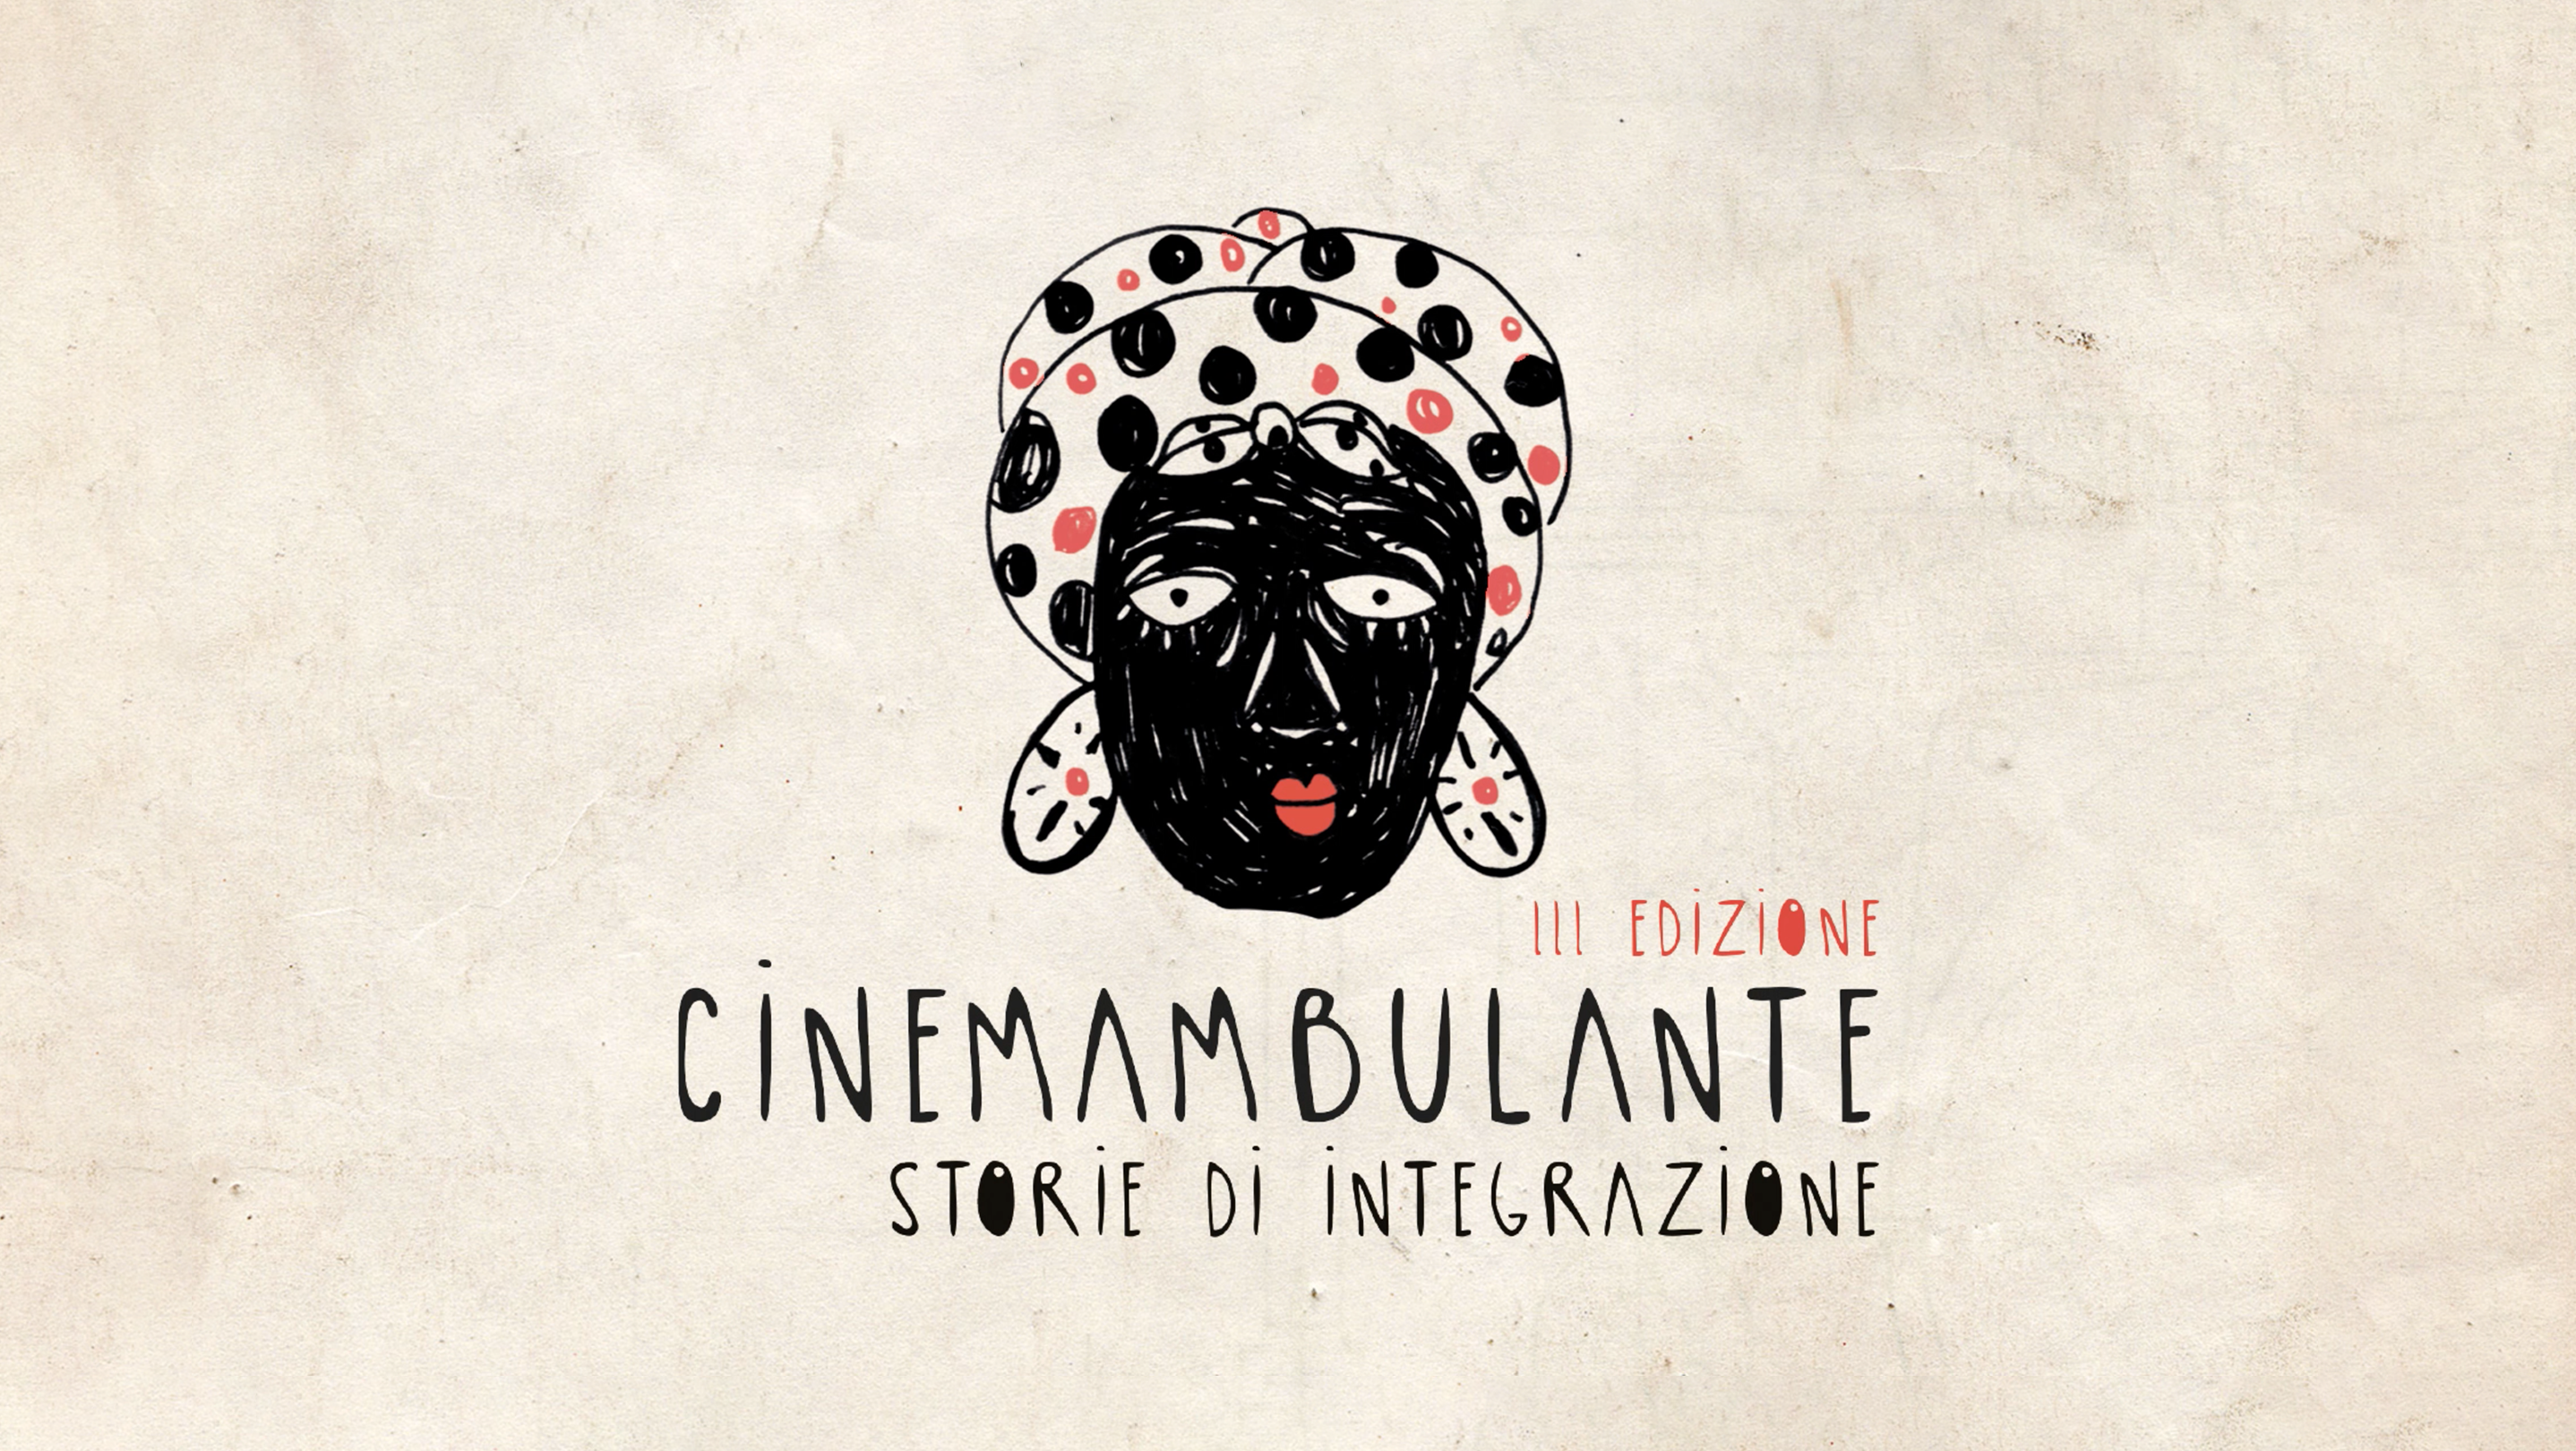 cinemambulante 4